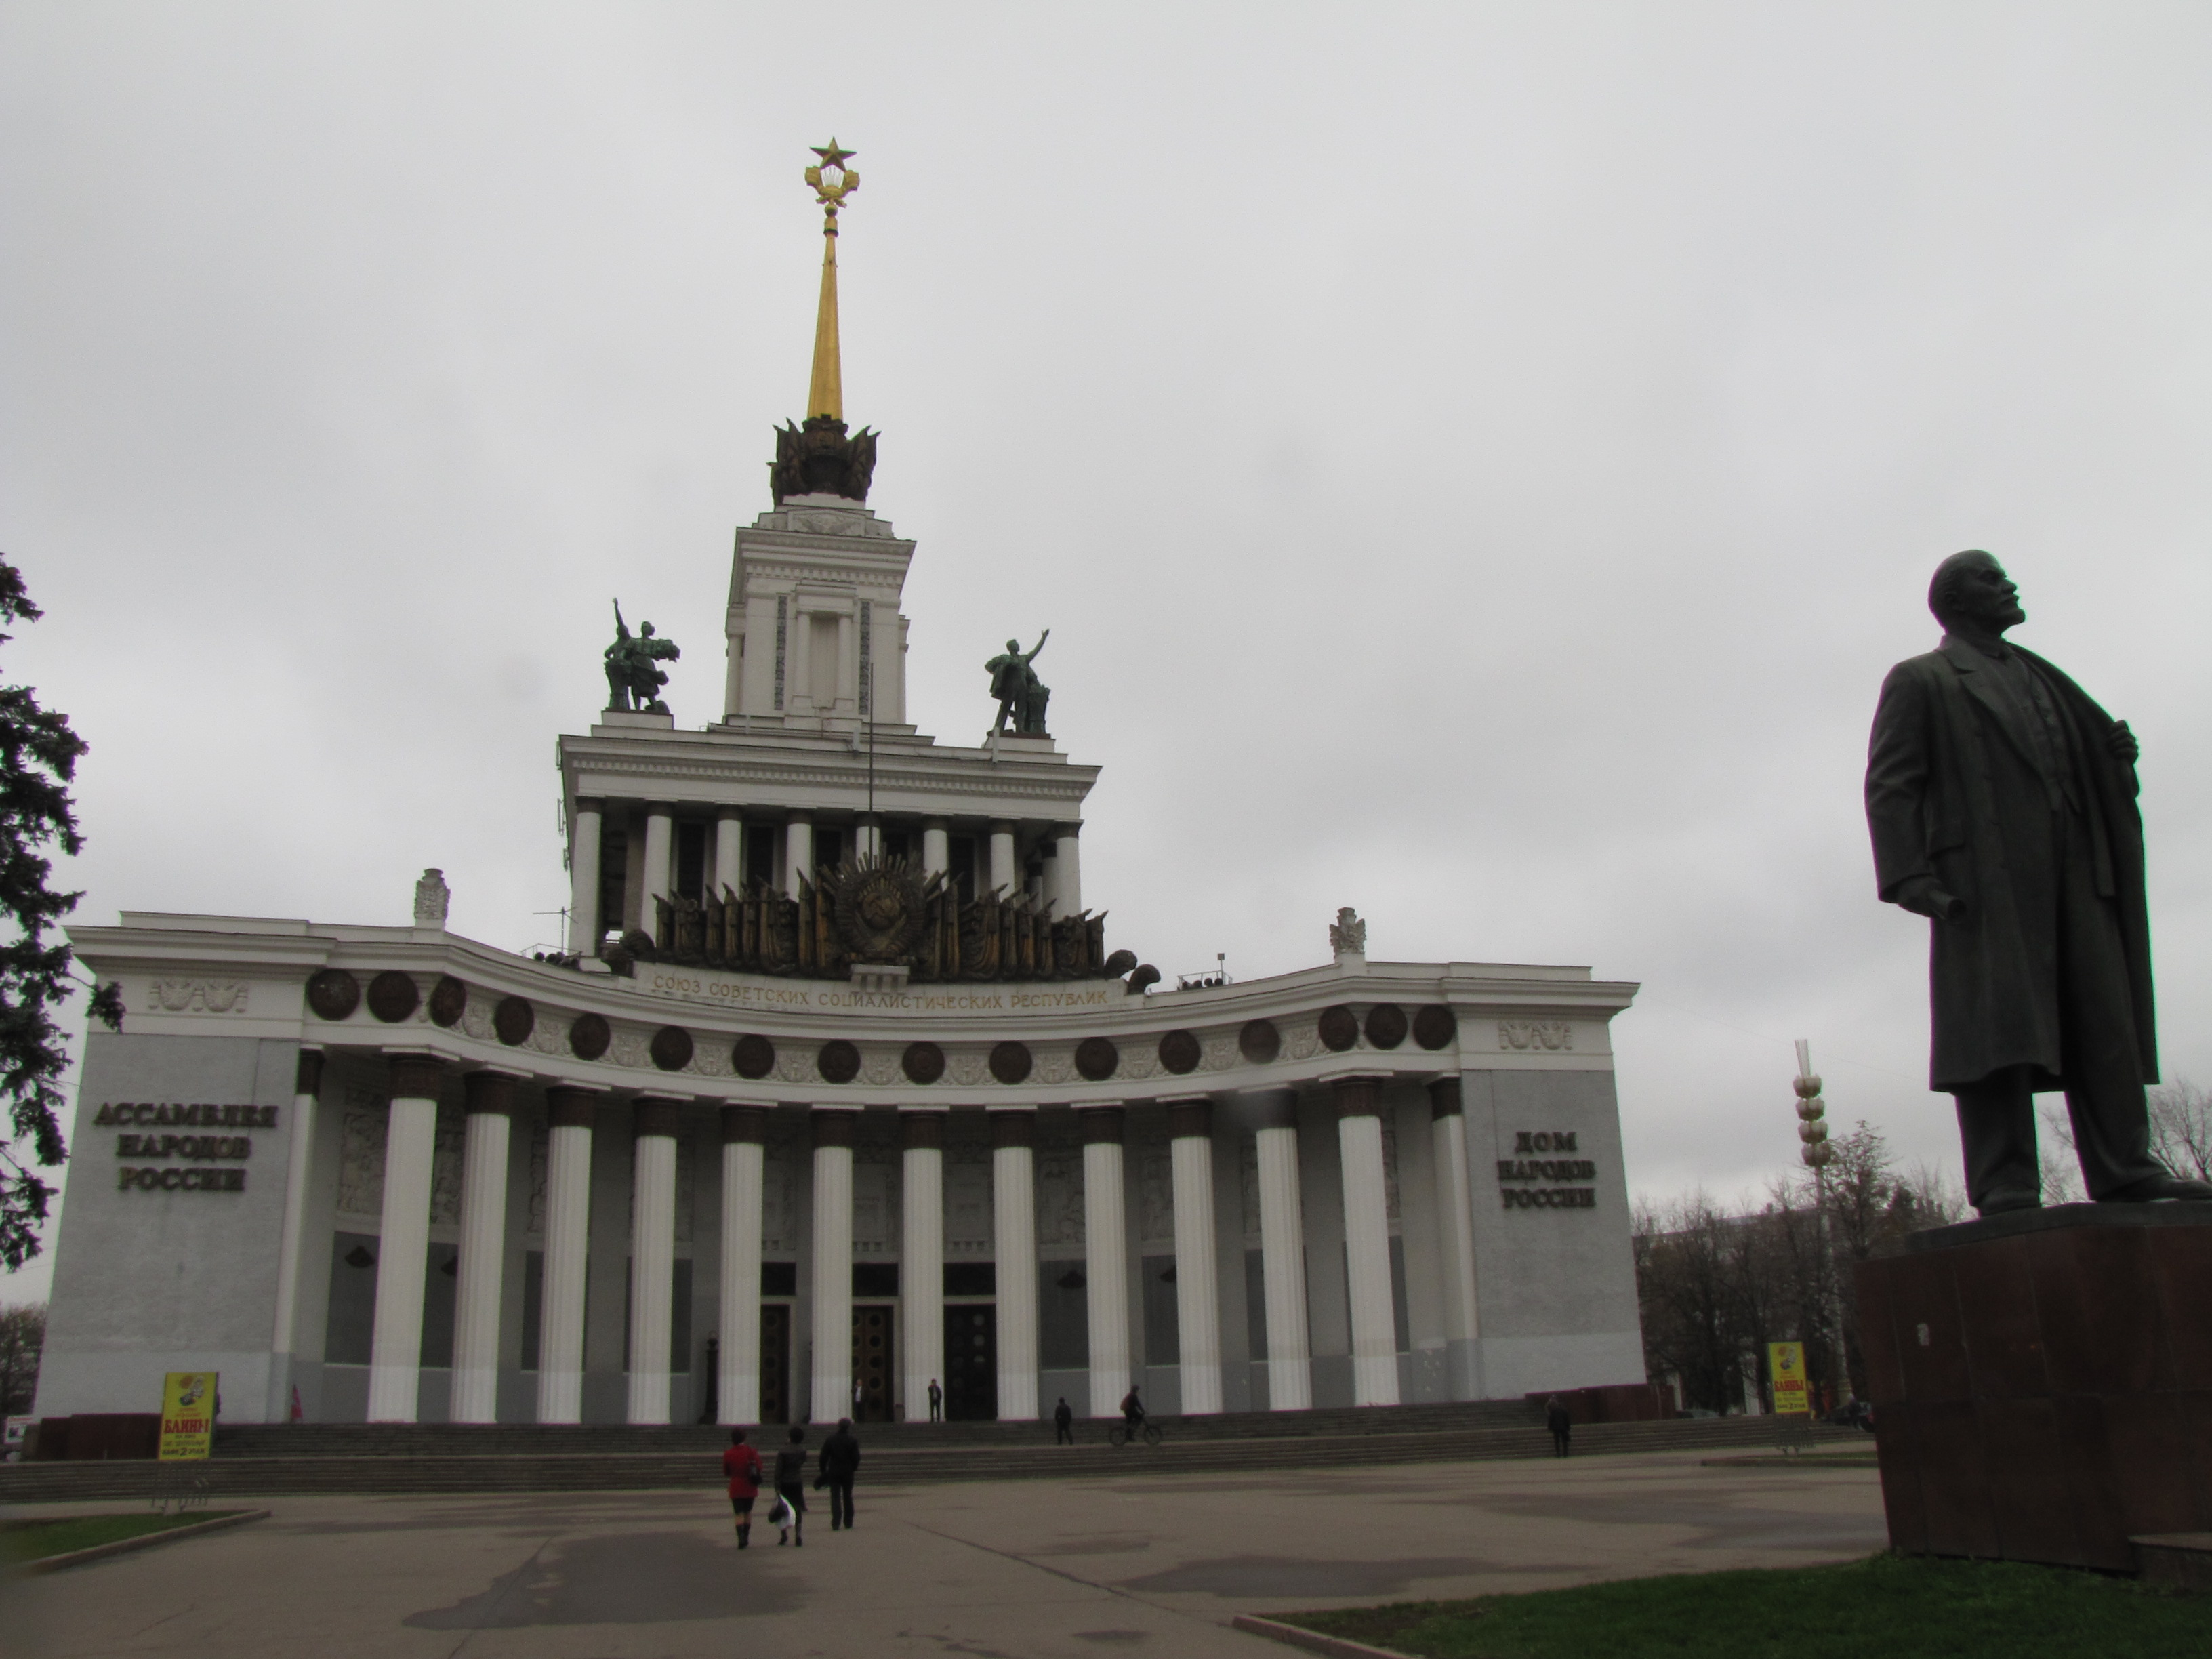 Moscow attractions and things to do